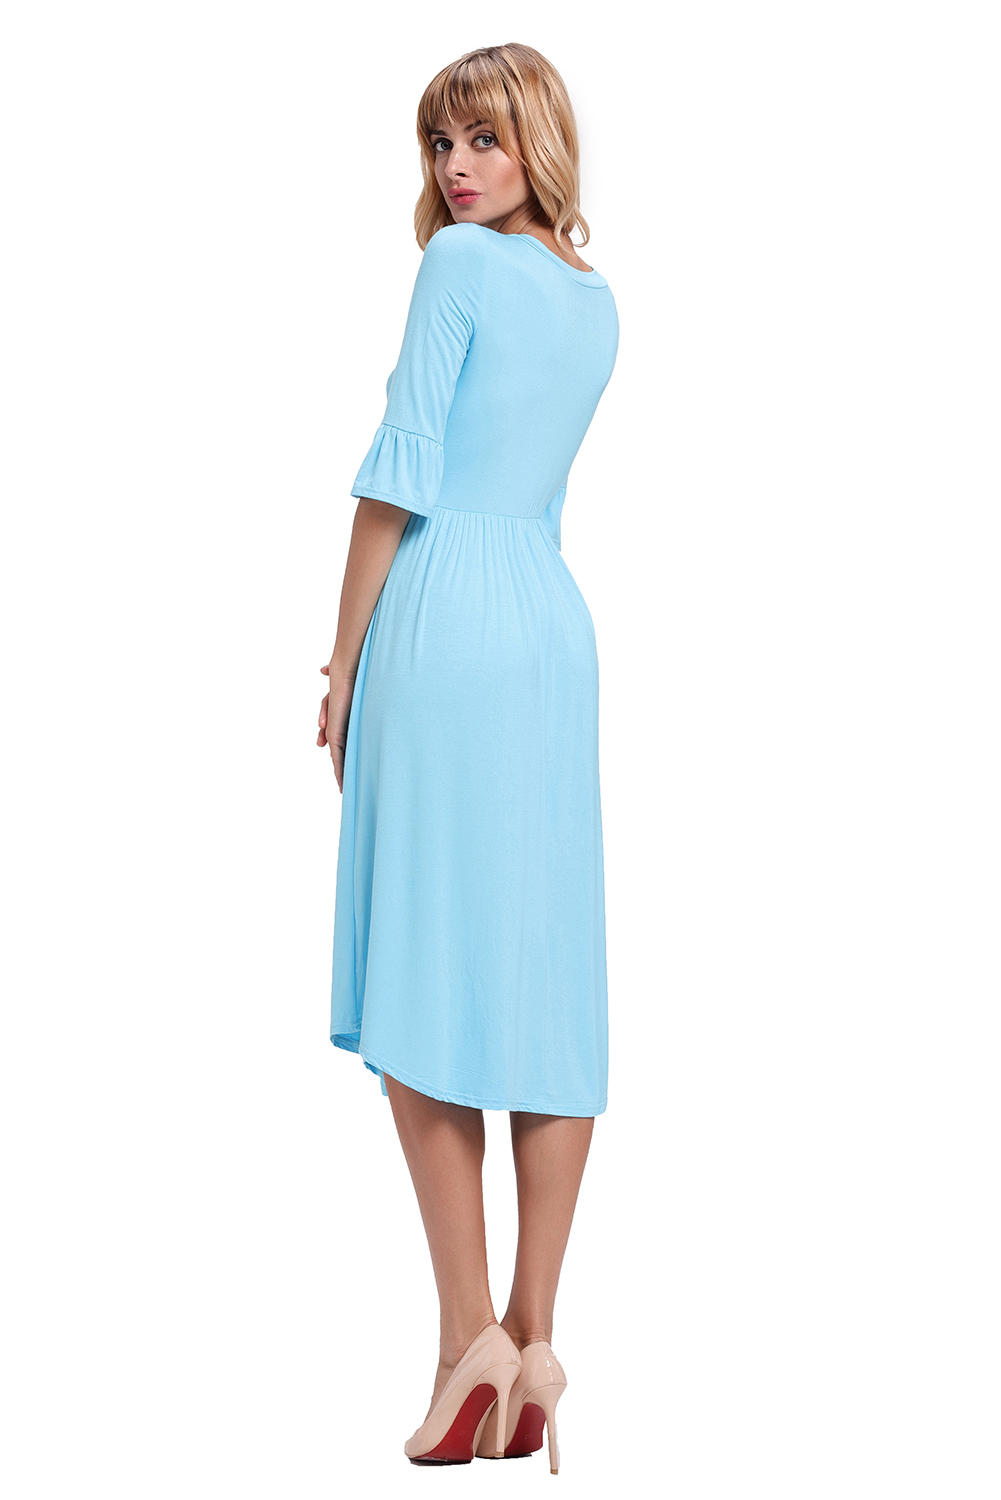 BY61652-5 Blue Ruffle Sleeve Midi Jersey Dress